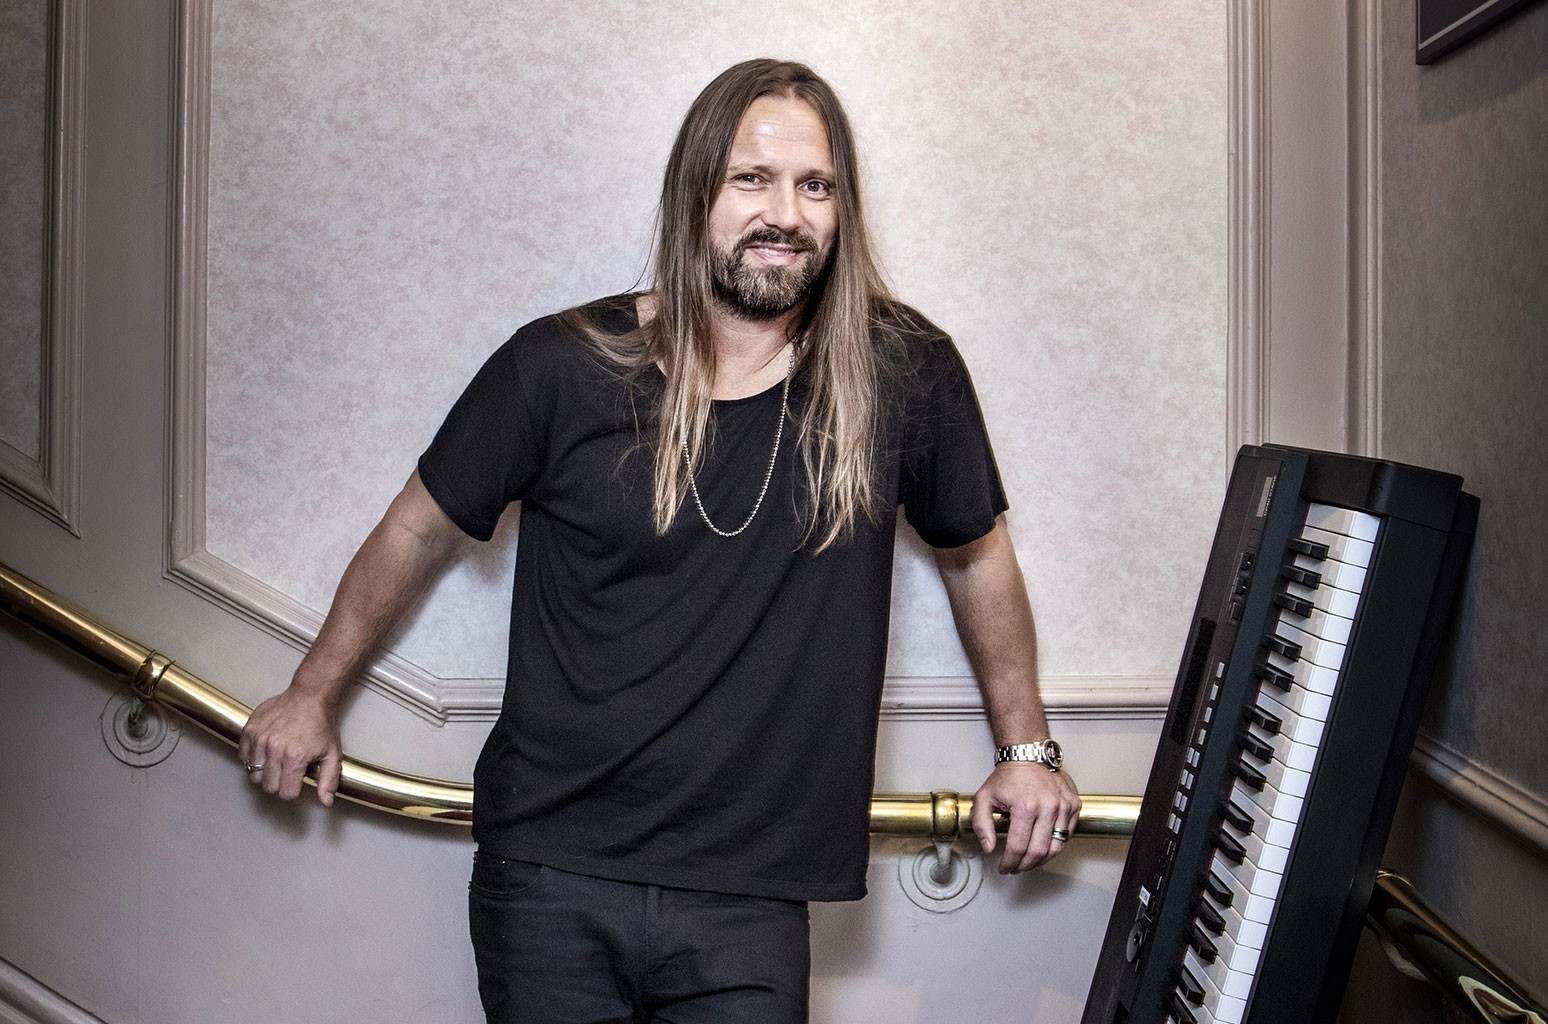 Max Martin standing in a hallway with a large keyboard next to him.